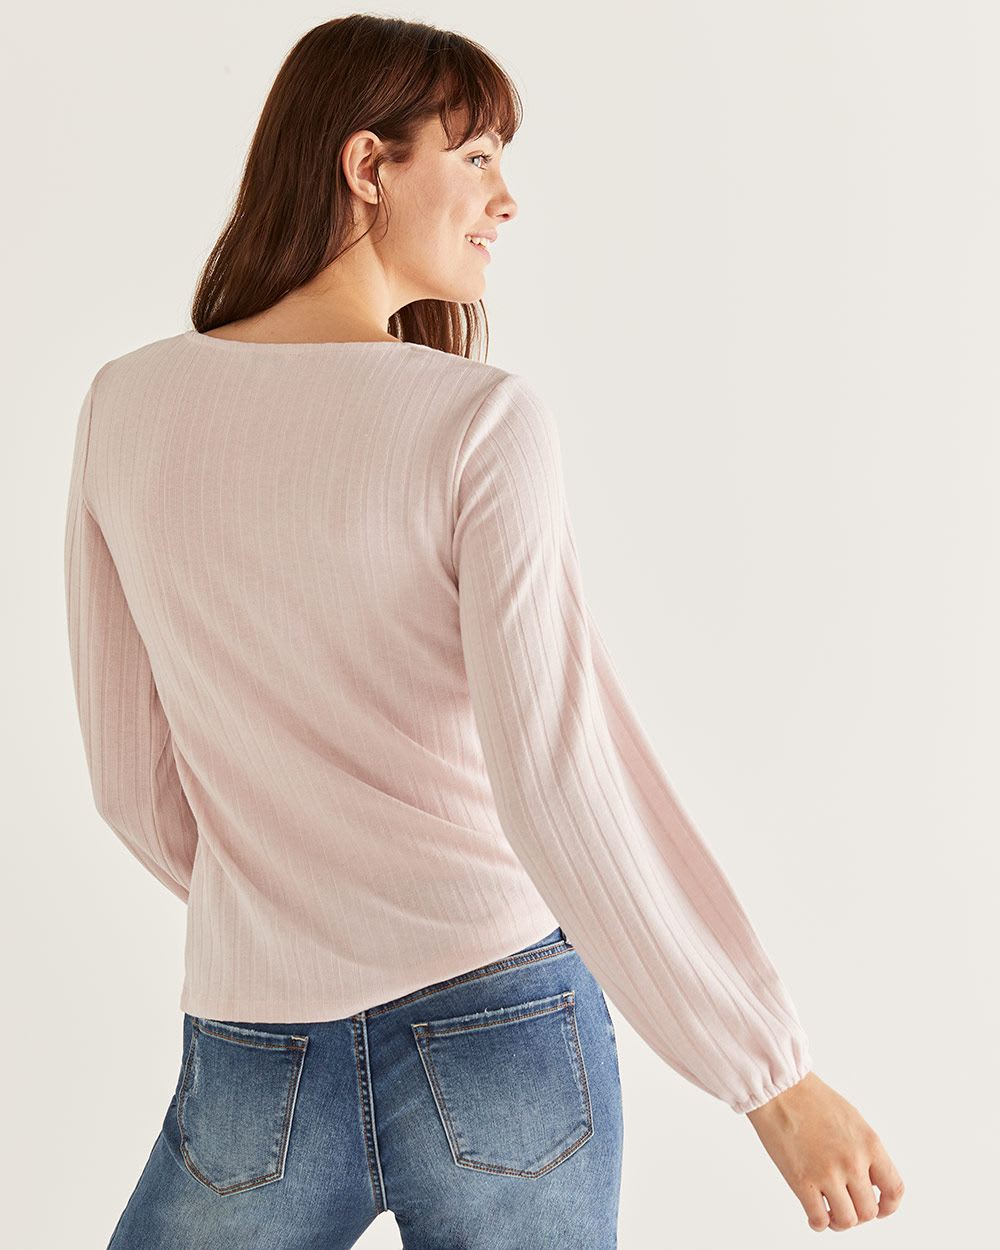 Bubble Sleeve Rib Knit Top